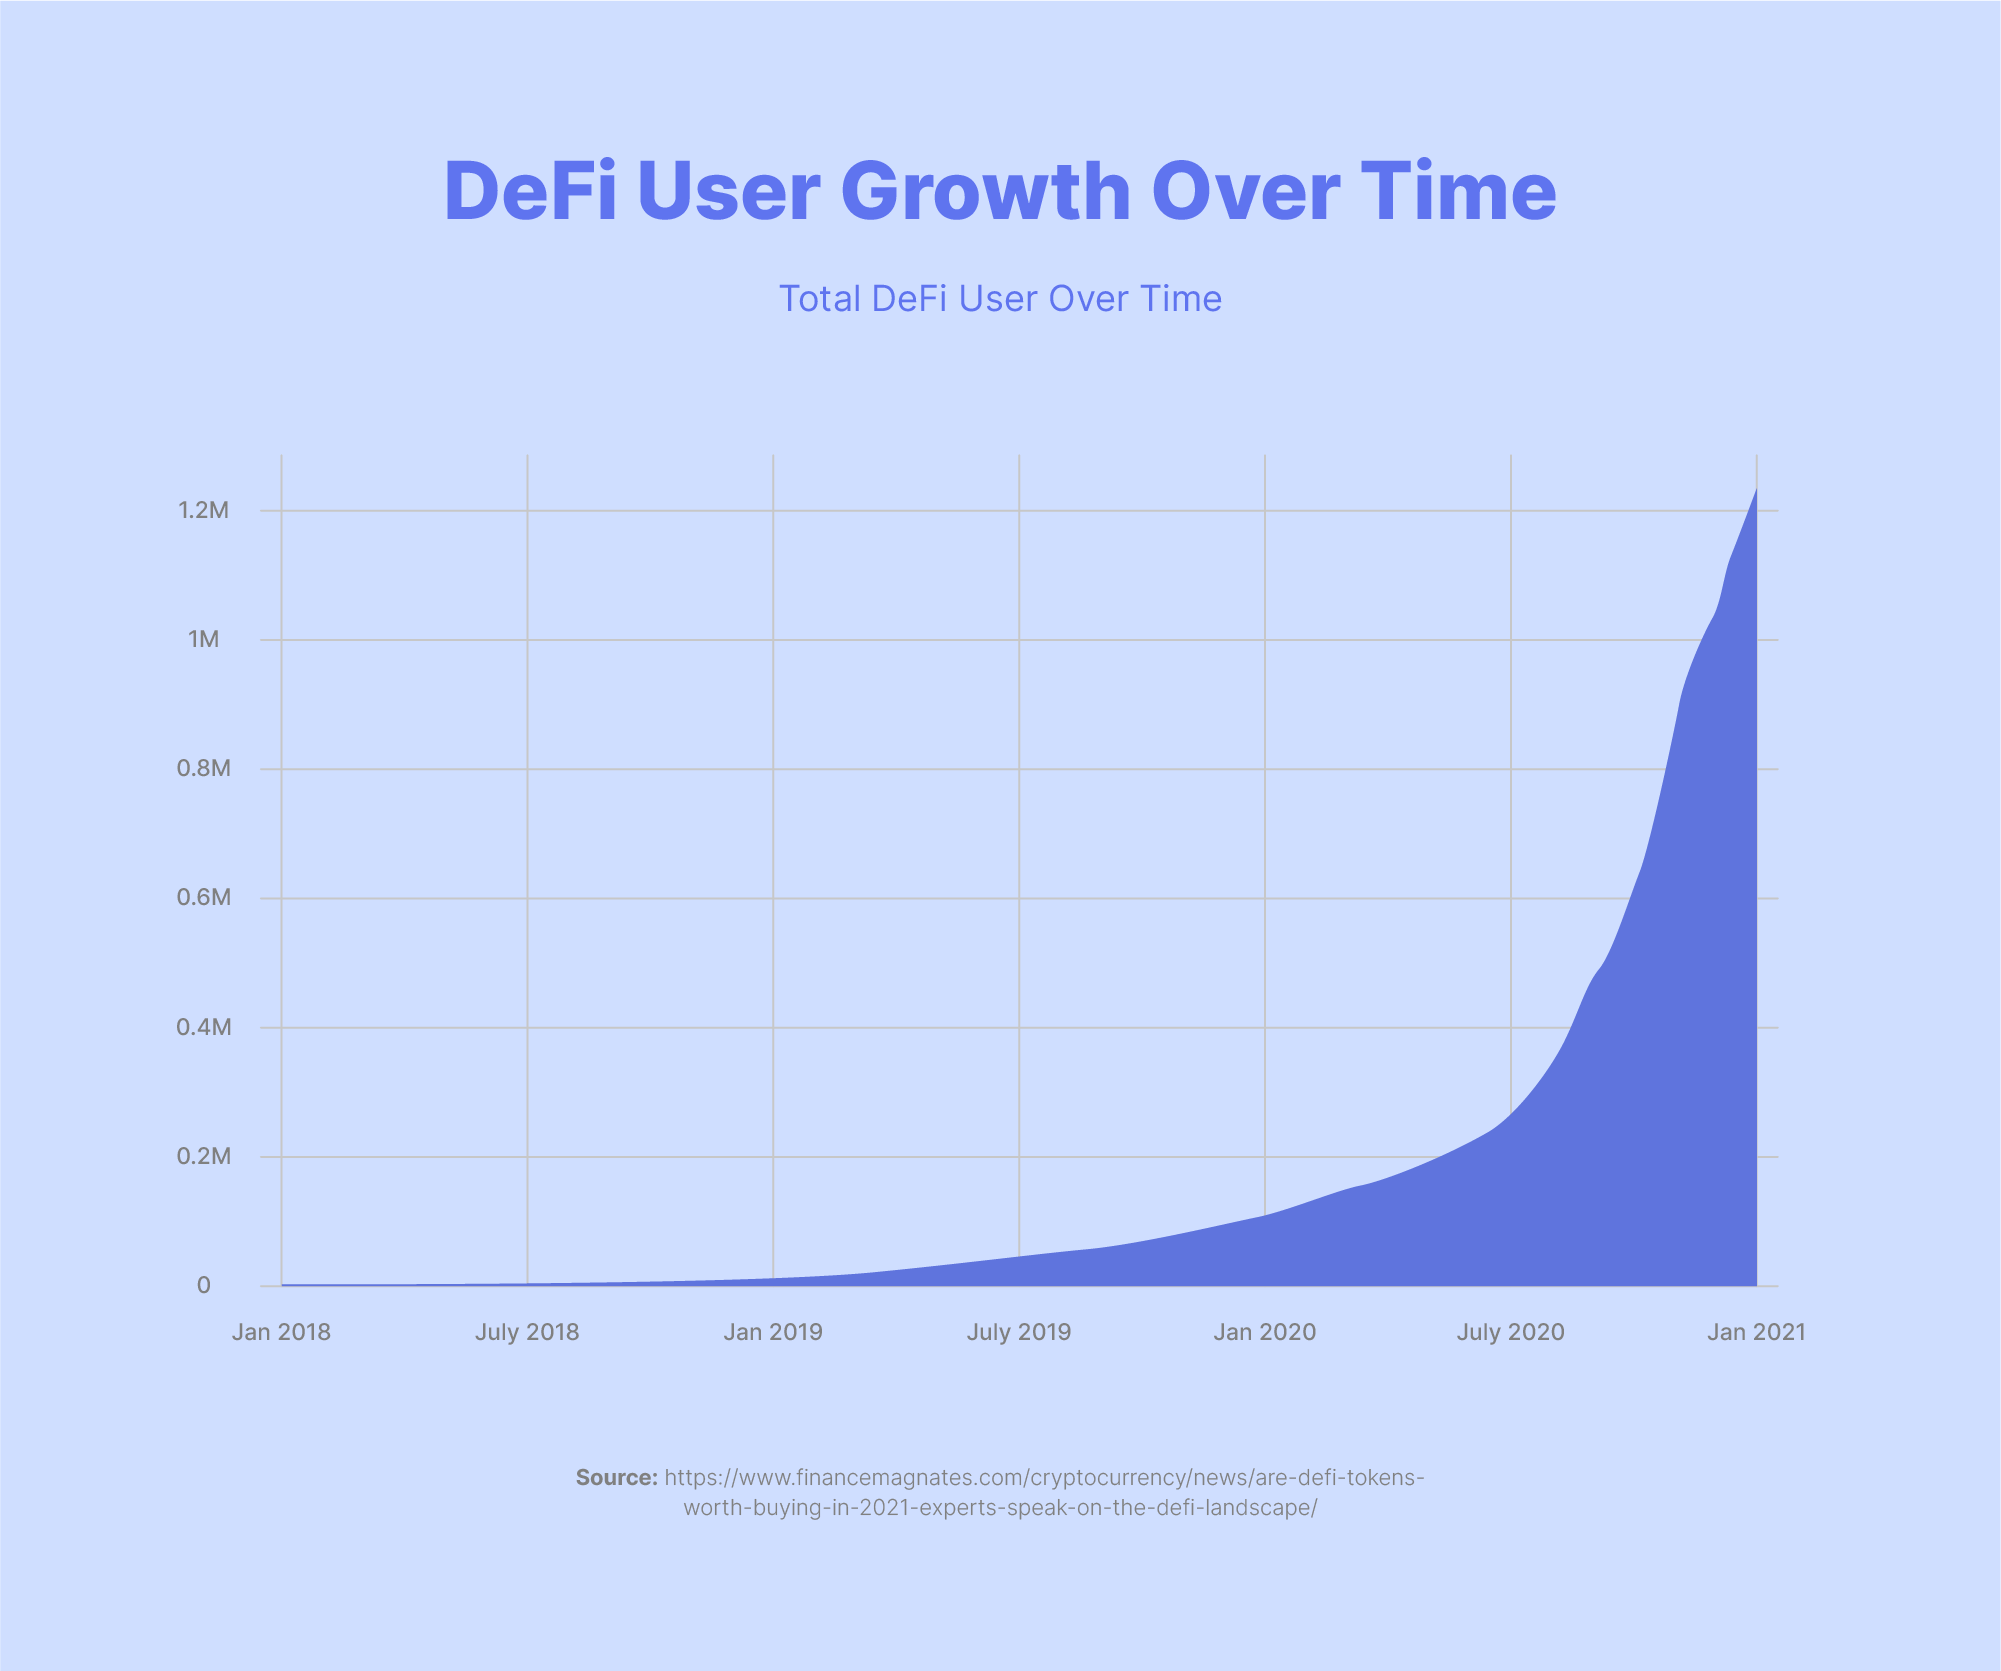 defi user growth over time